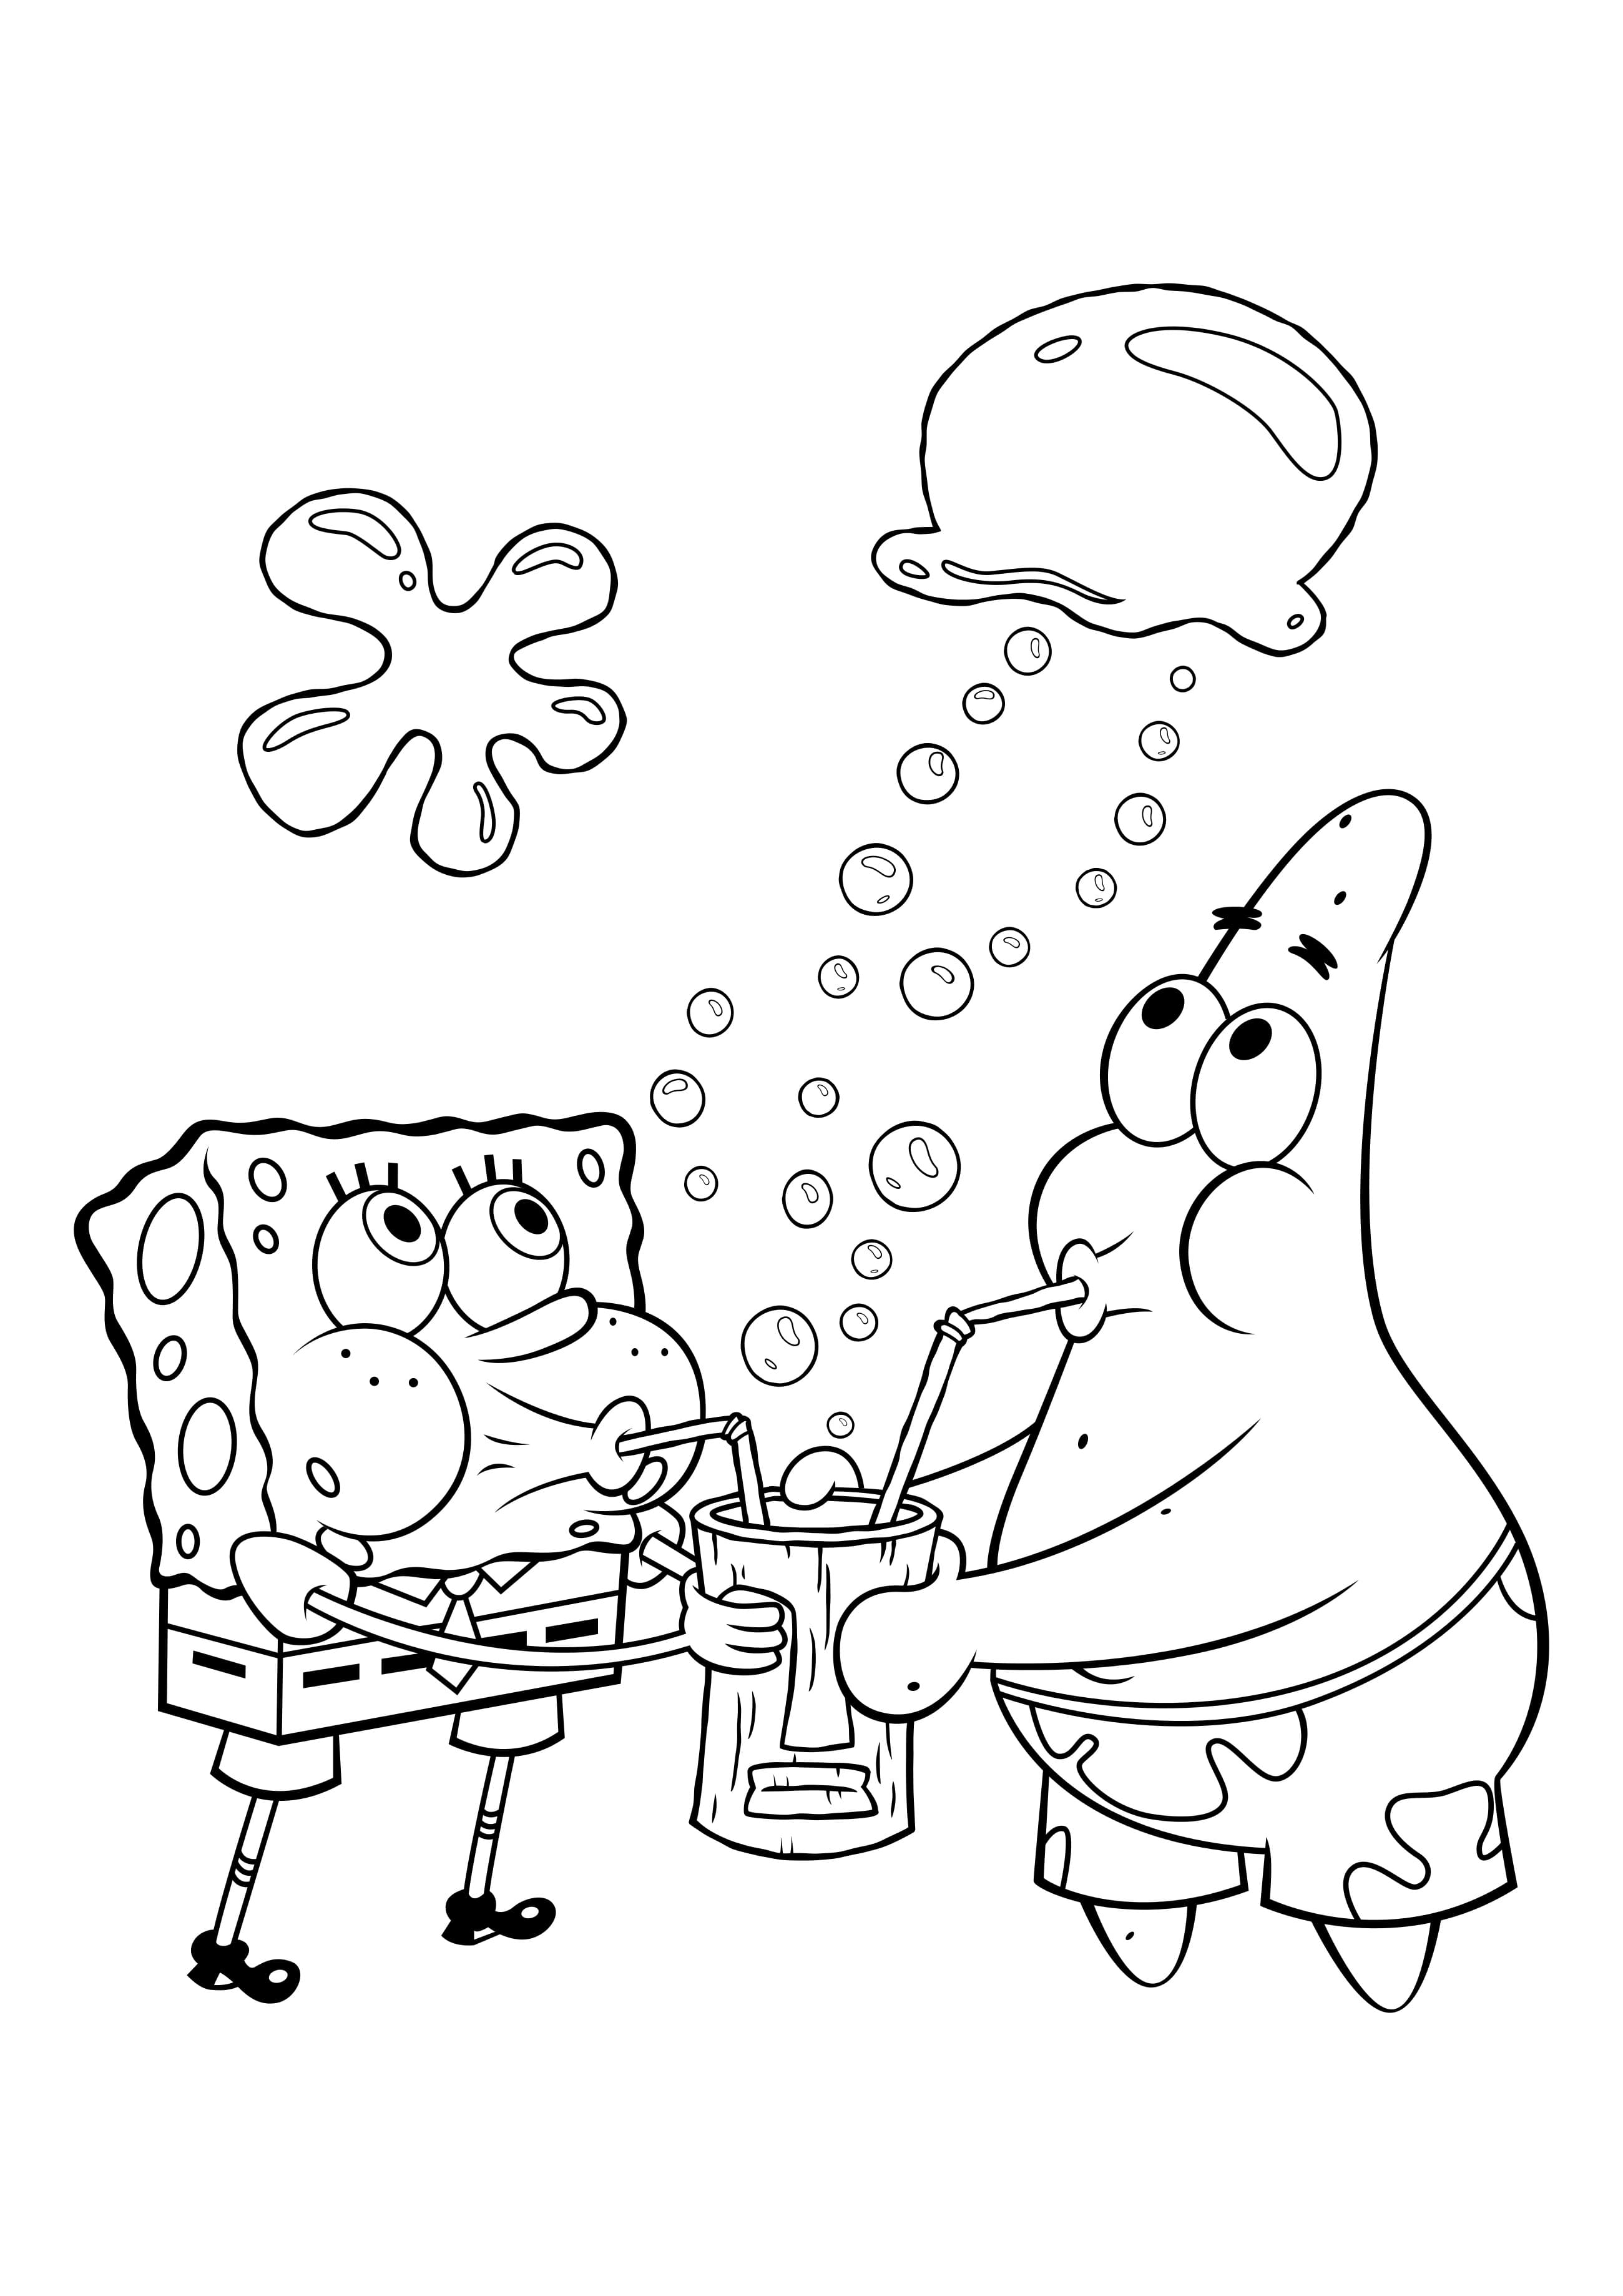 Best Friend Coloring Pages - GetColoringPages.com | 3677x2600